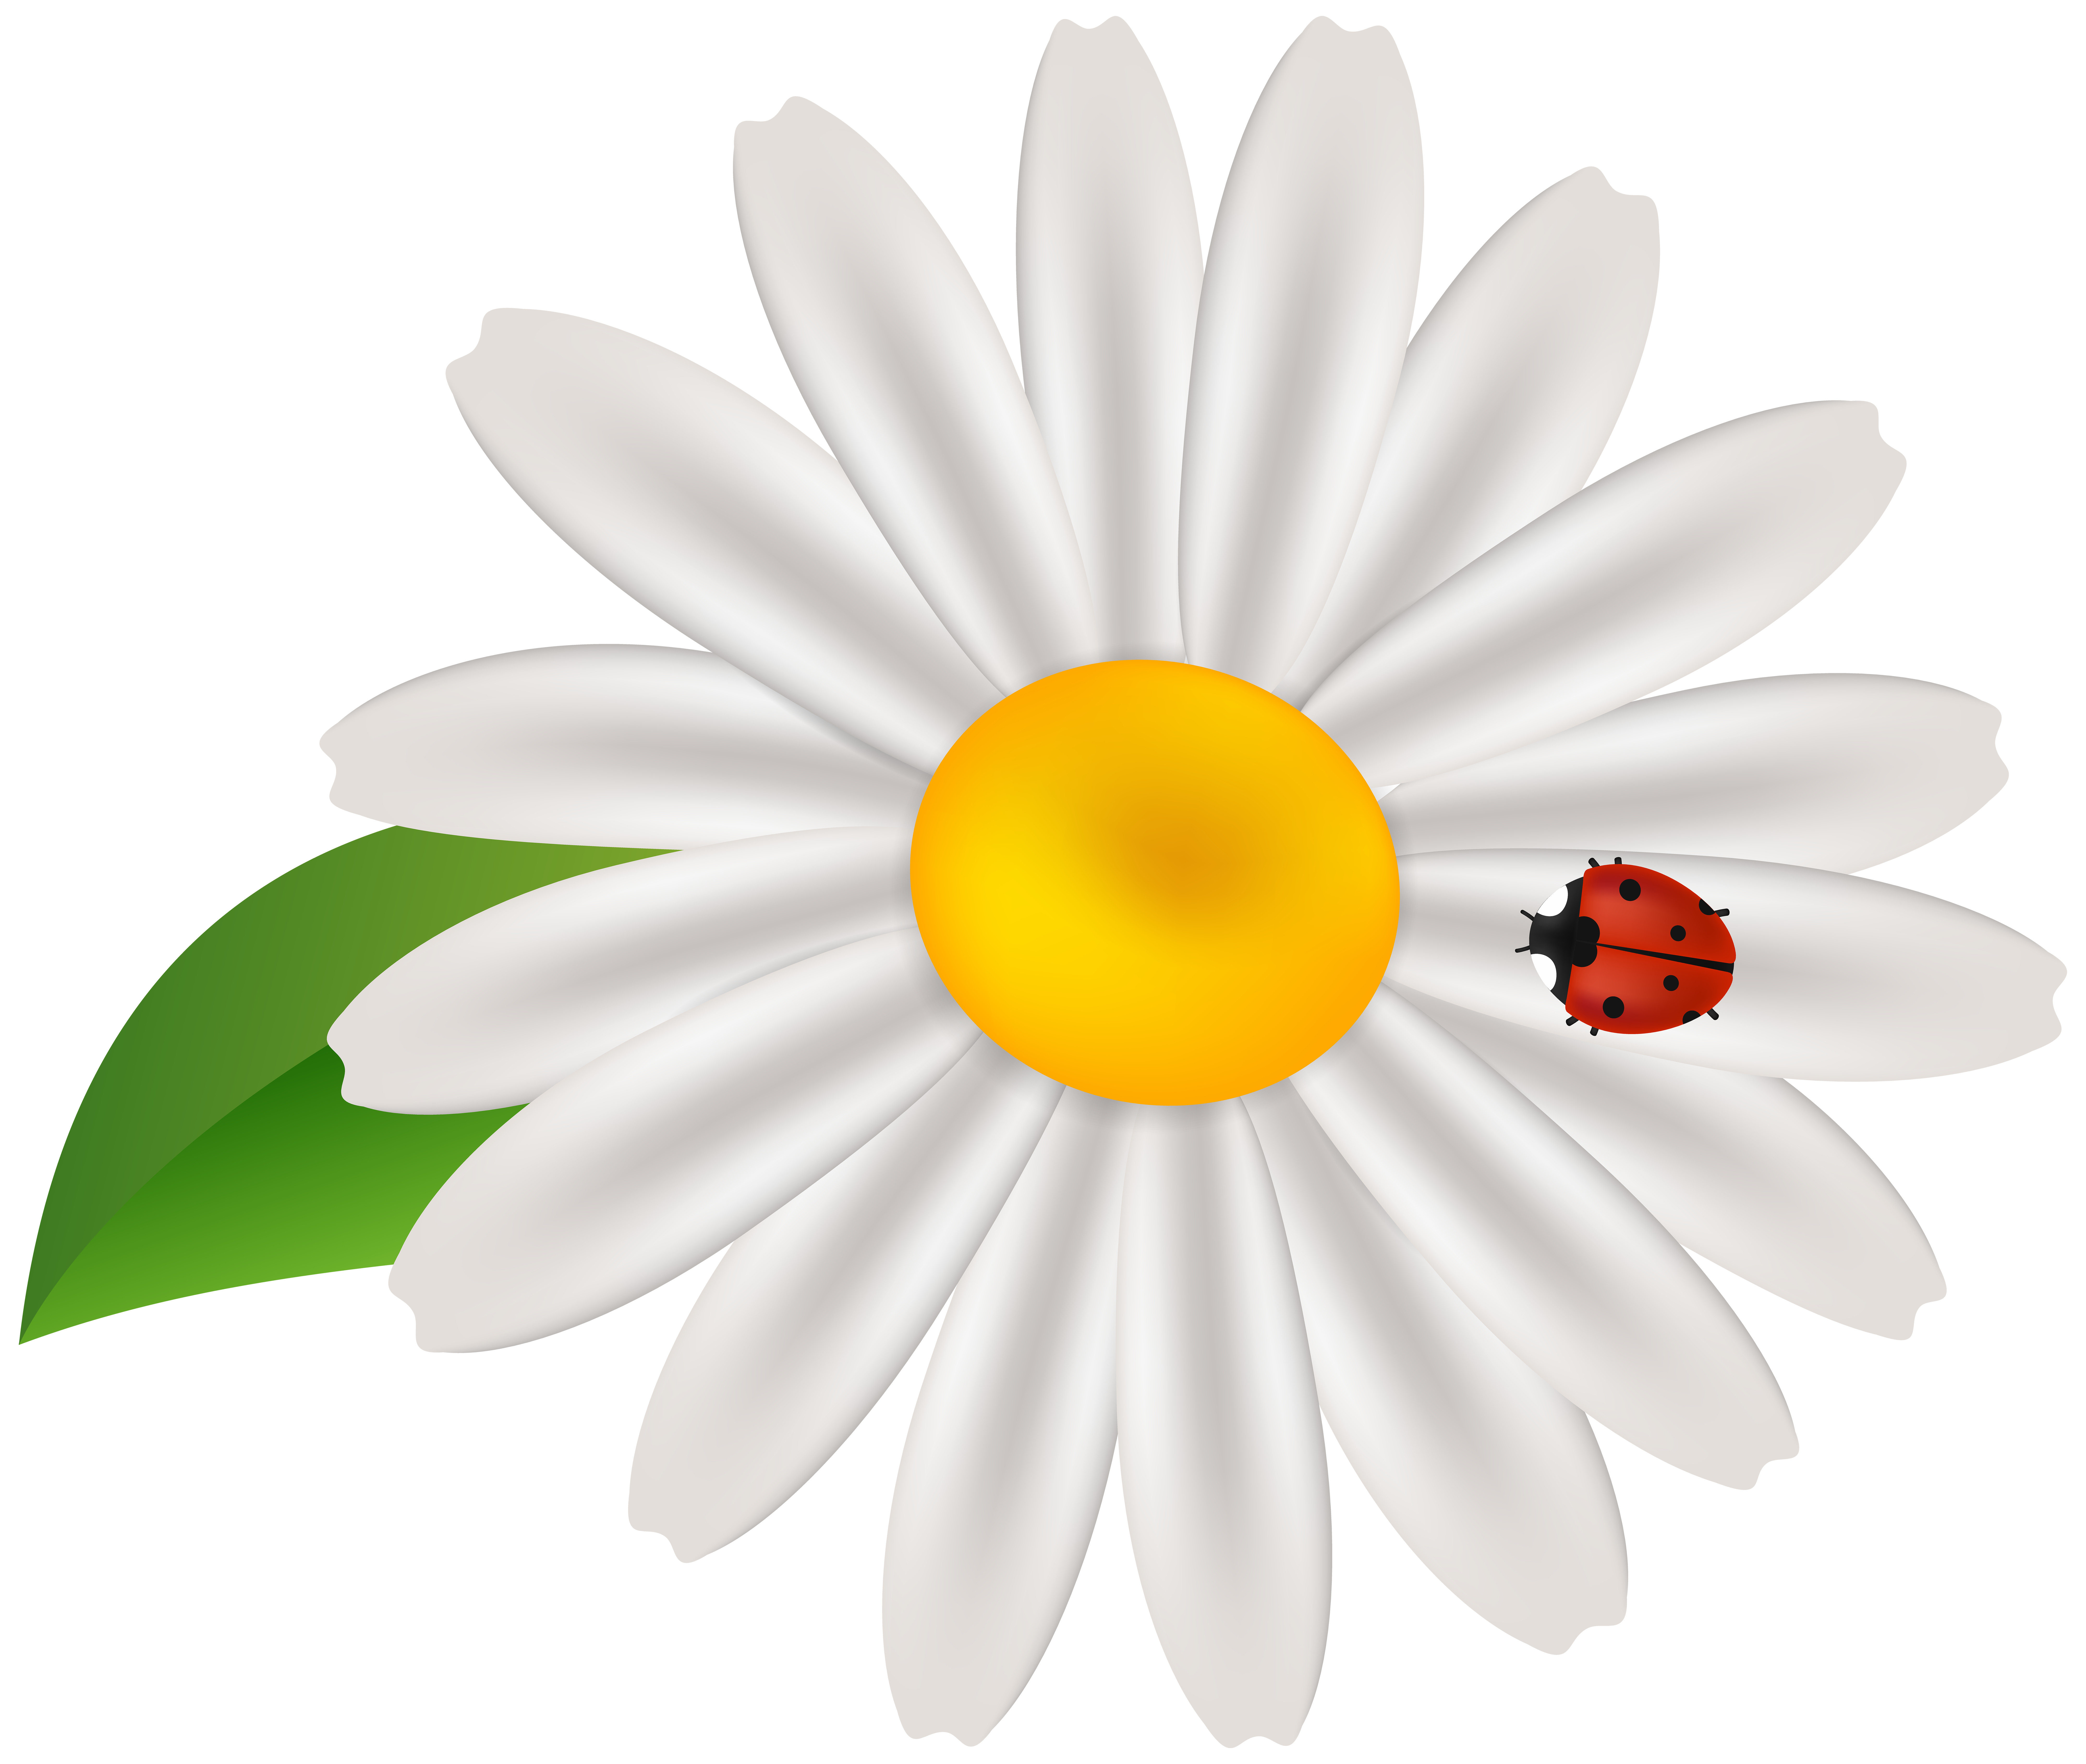 Ladybug on a flower clipart free graphic download Spring Flower with Lady Bug Transparent Clip Art | Gallery ... graphic download